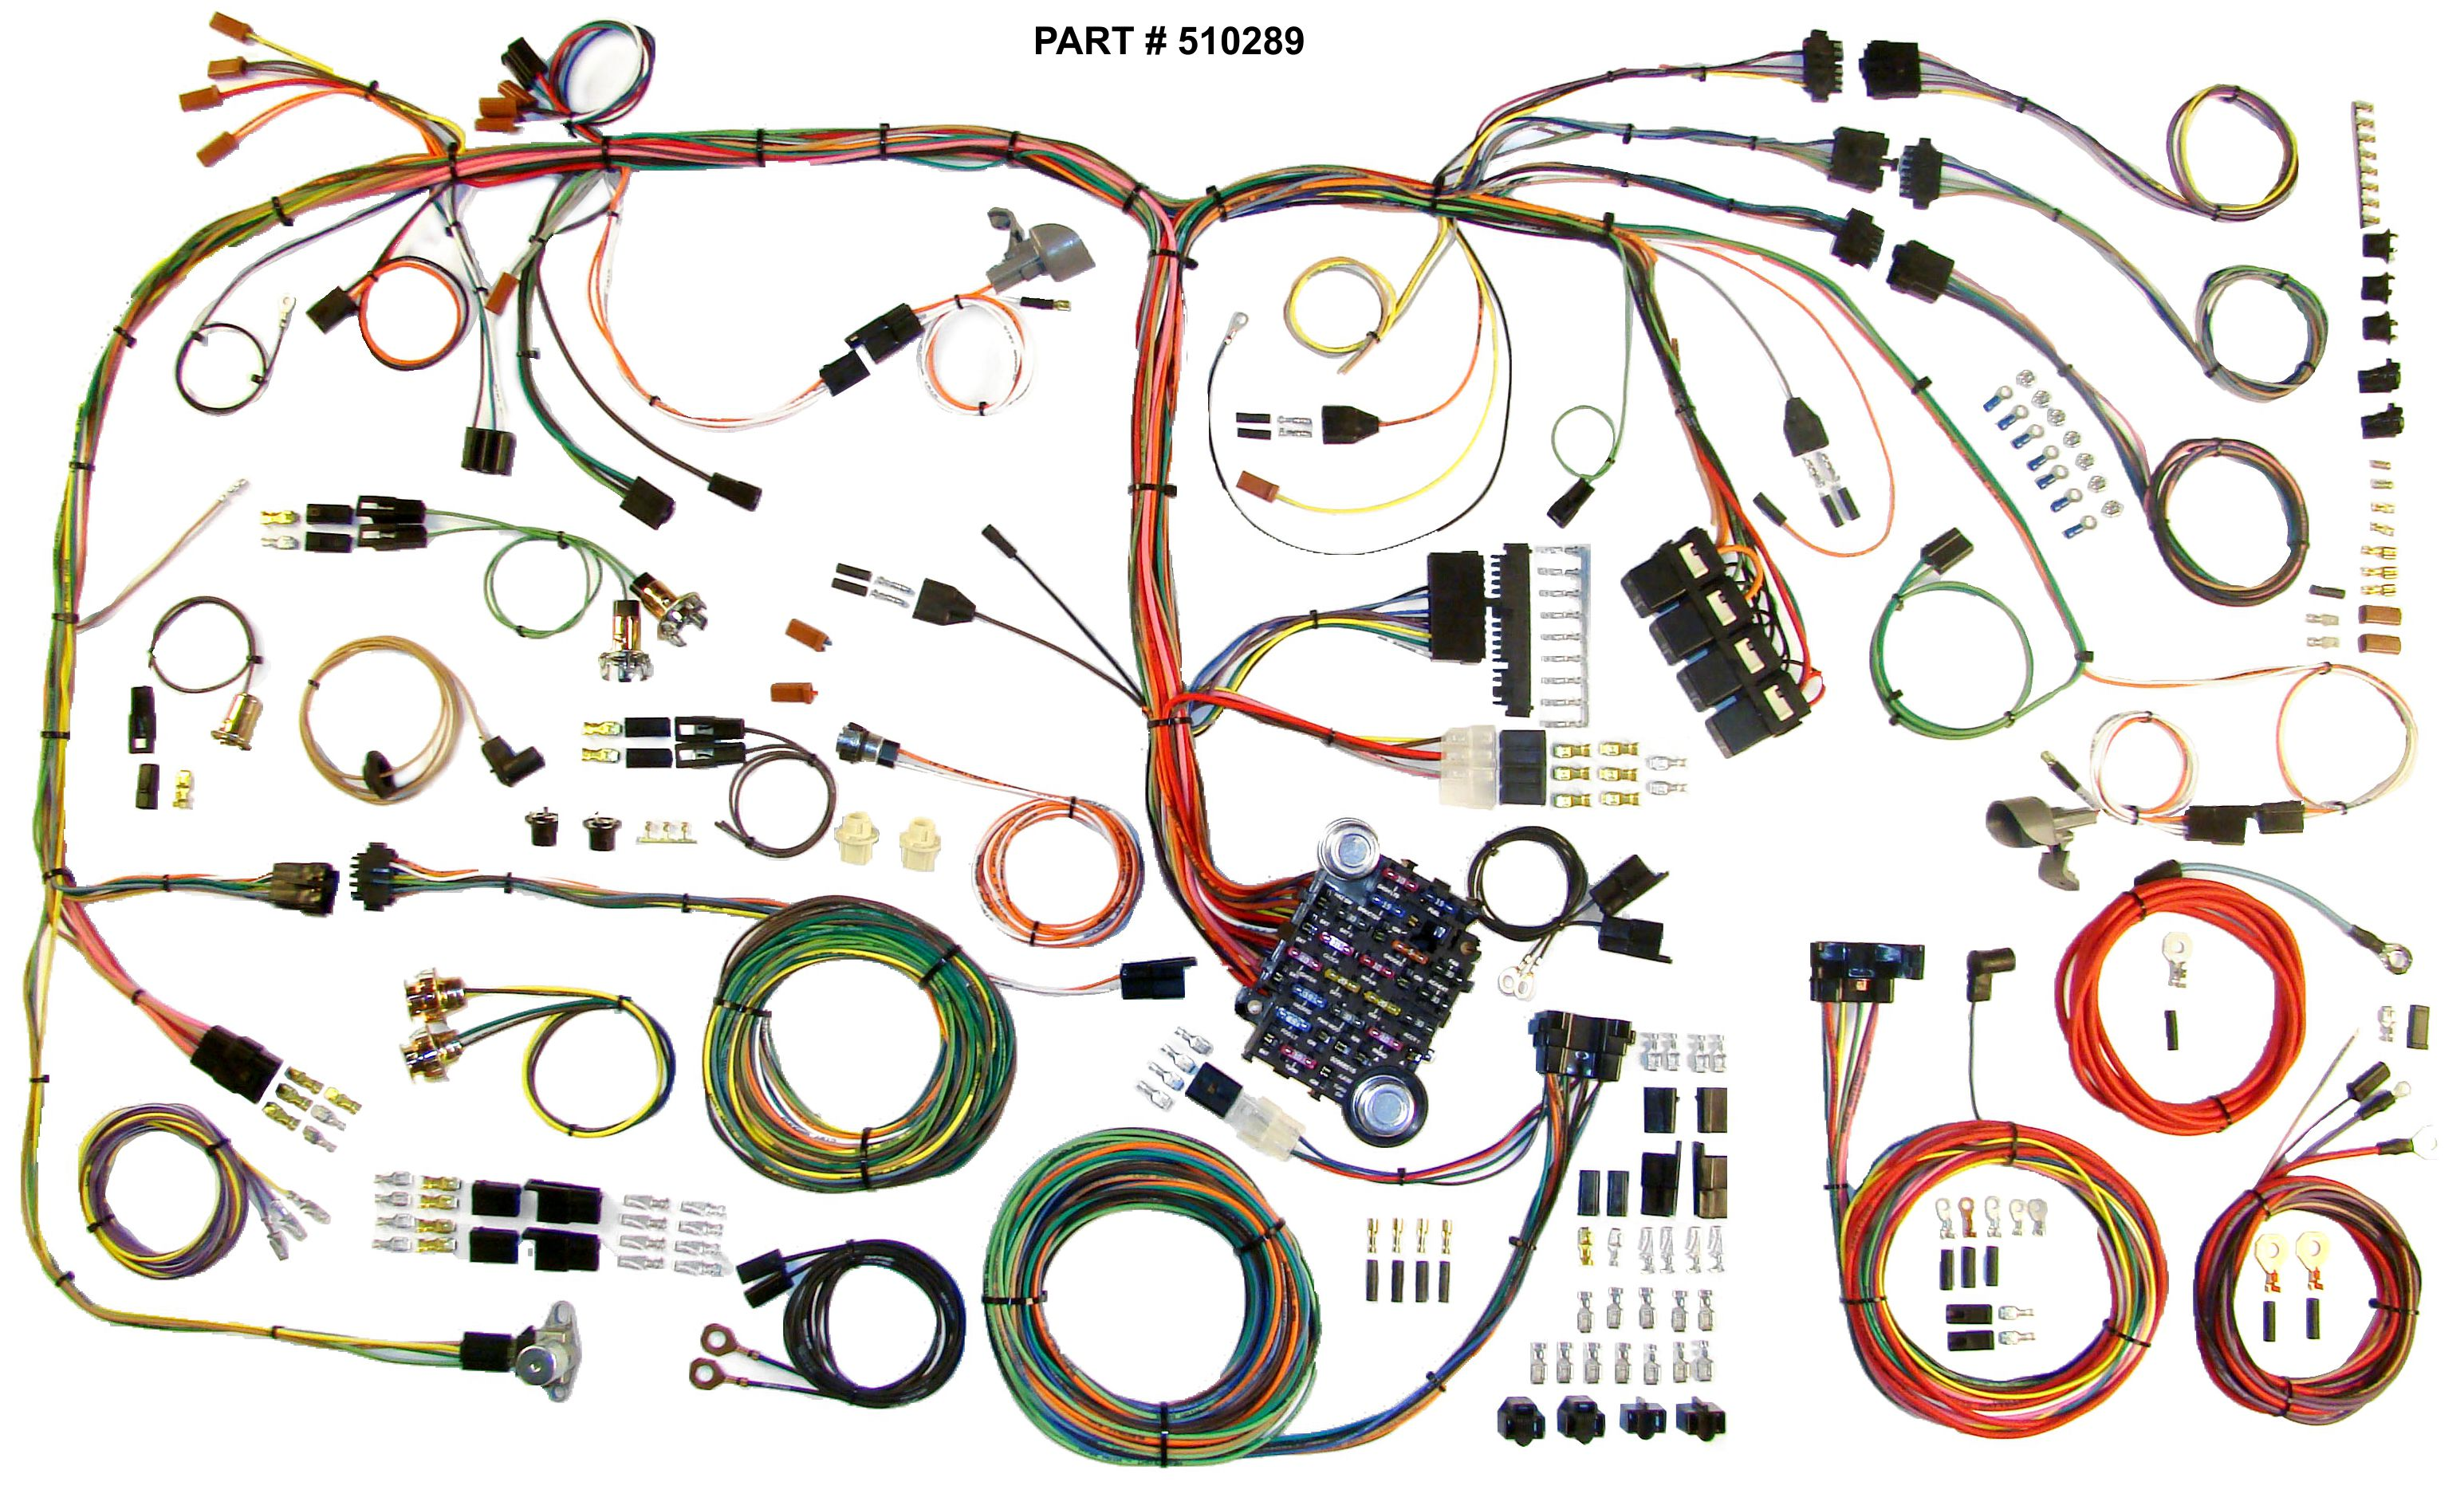 1970 1974 plymouth barracuda dodge challenger restomod wiring system rh lectriclimited com 1971 Cuda 1970 barracuda wiring harness